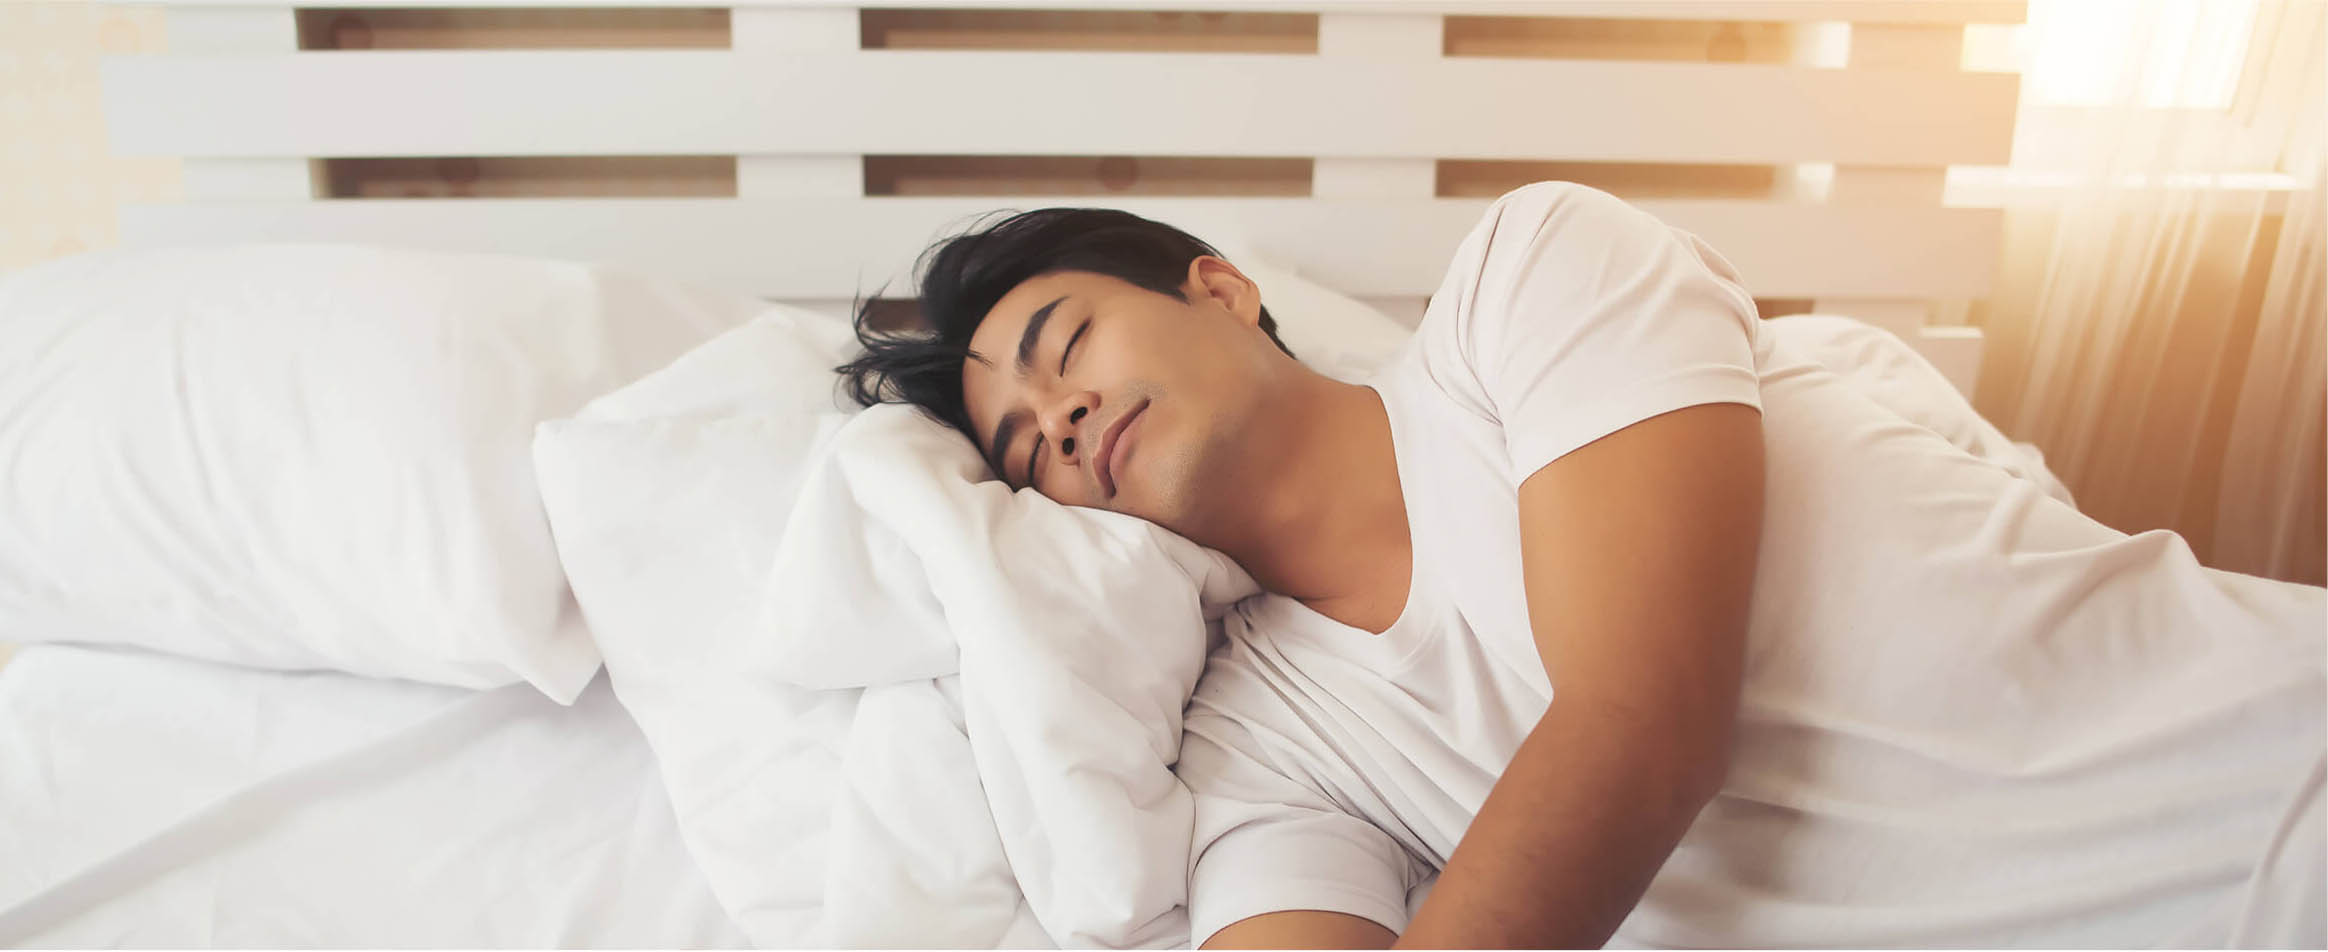 A man sleeps comfortably on a soft pillowy bed.